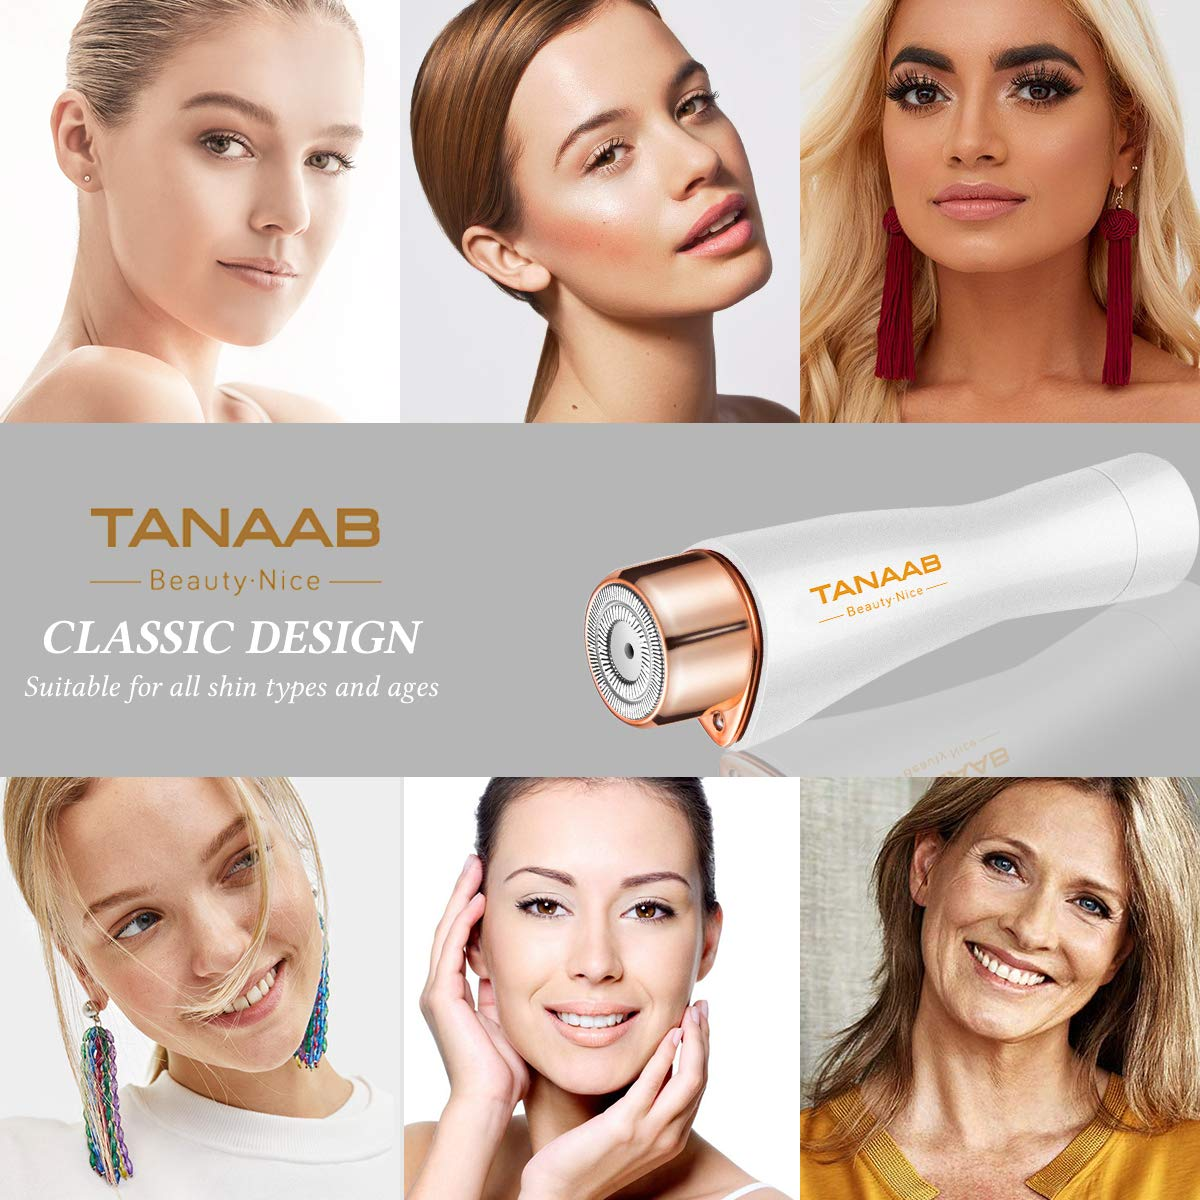 Facial Hair Removal for Women, TANAAB Painless Waterproof Smooth Facial Hair Remover Shaver Razor for Face Upper Lip Chin Cheeks Arm Built-in LED Light - White Gold